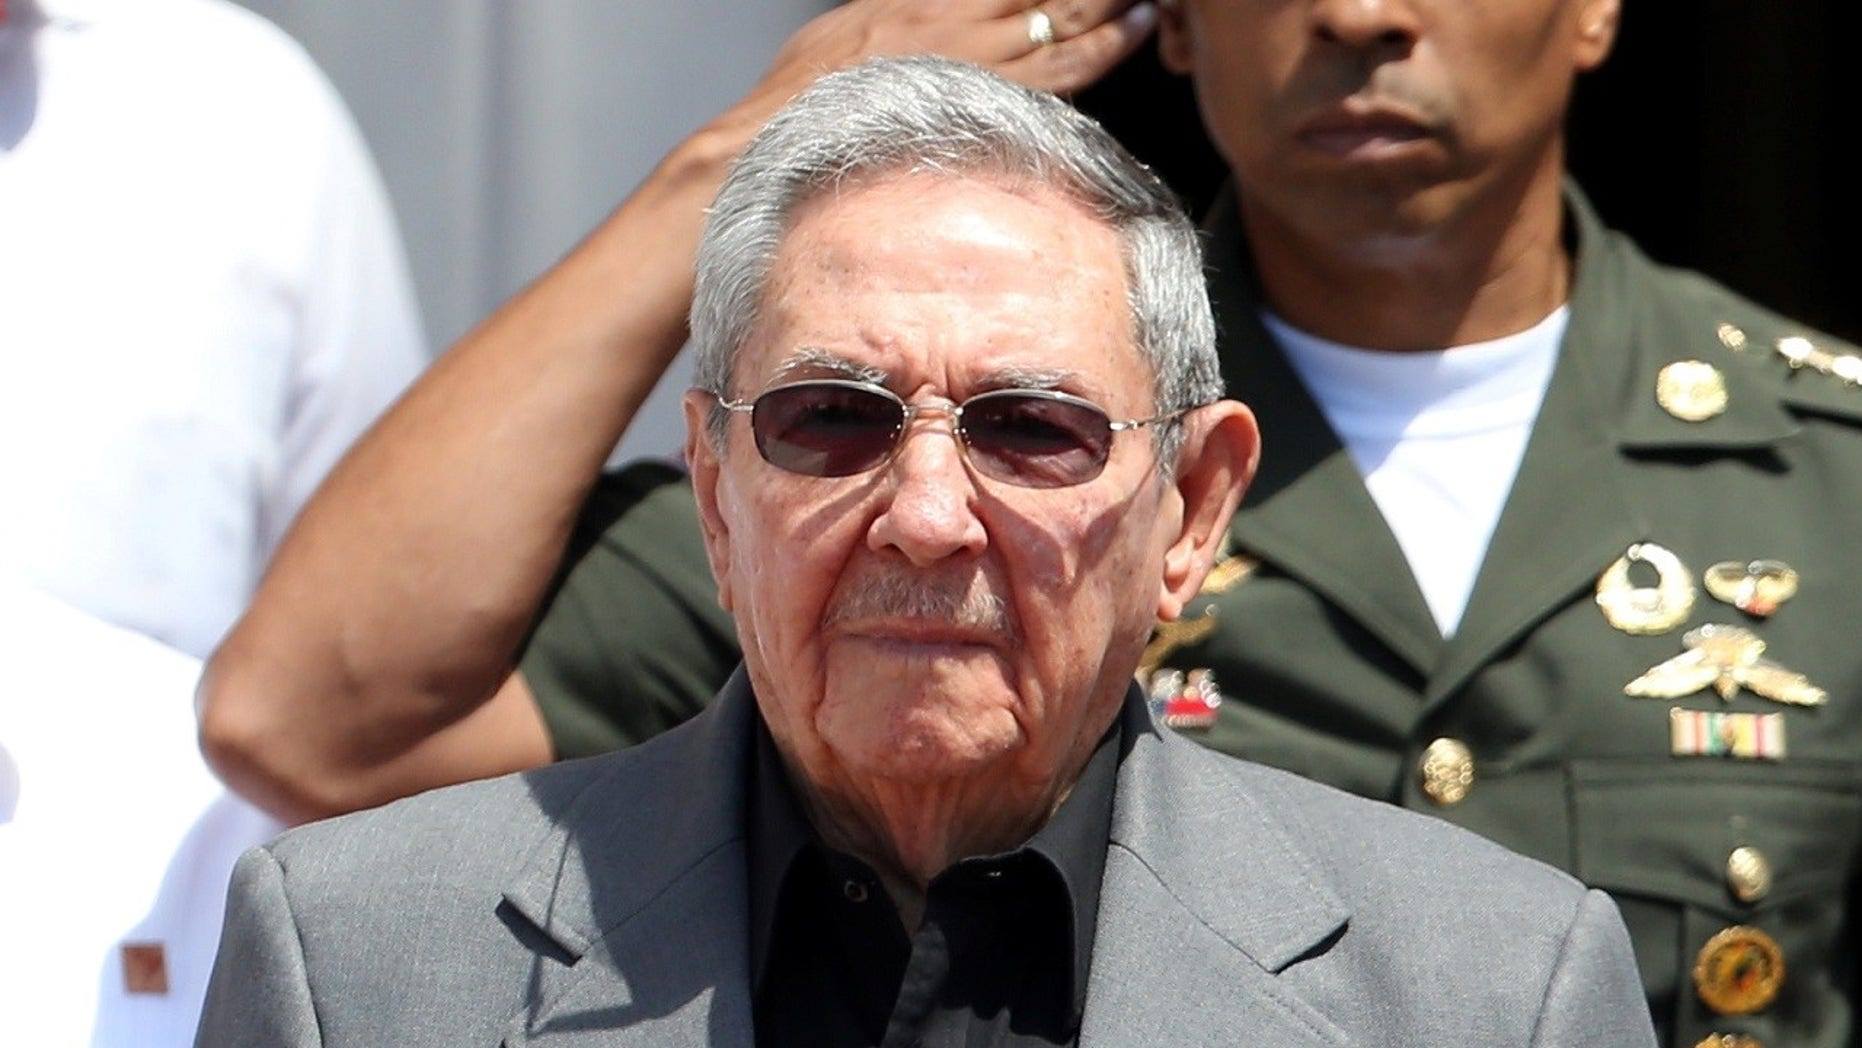 Raul Casto will remain Cuba's president until at least April 2018.